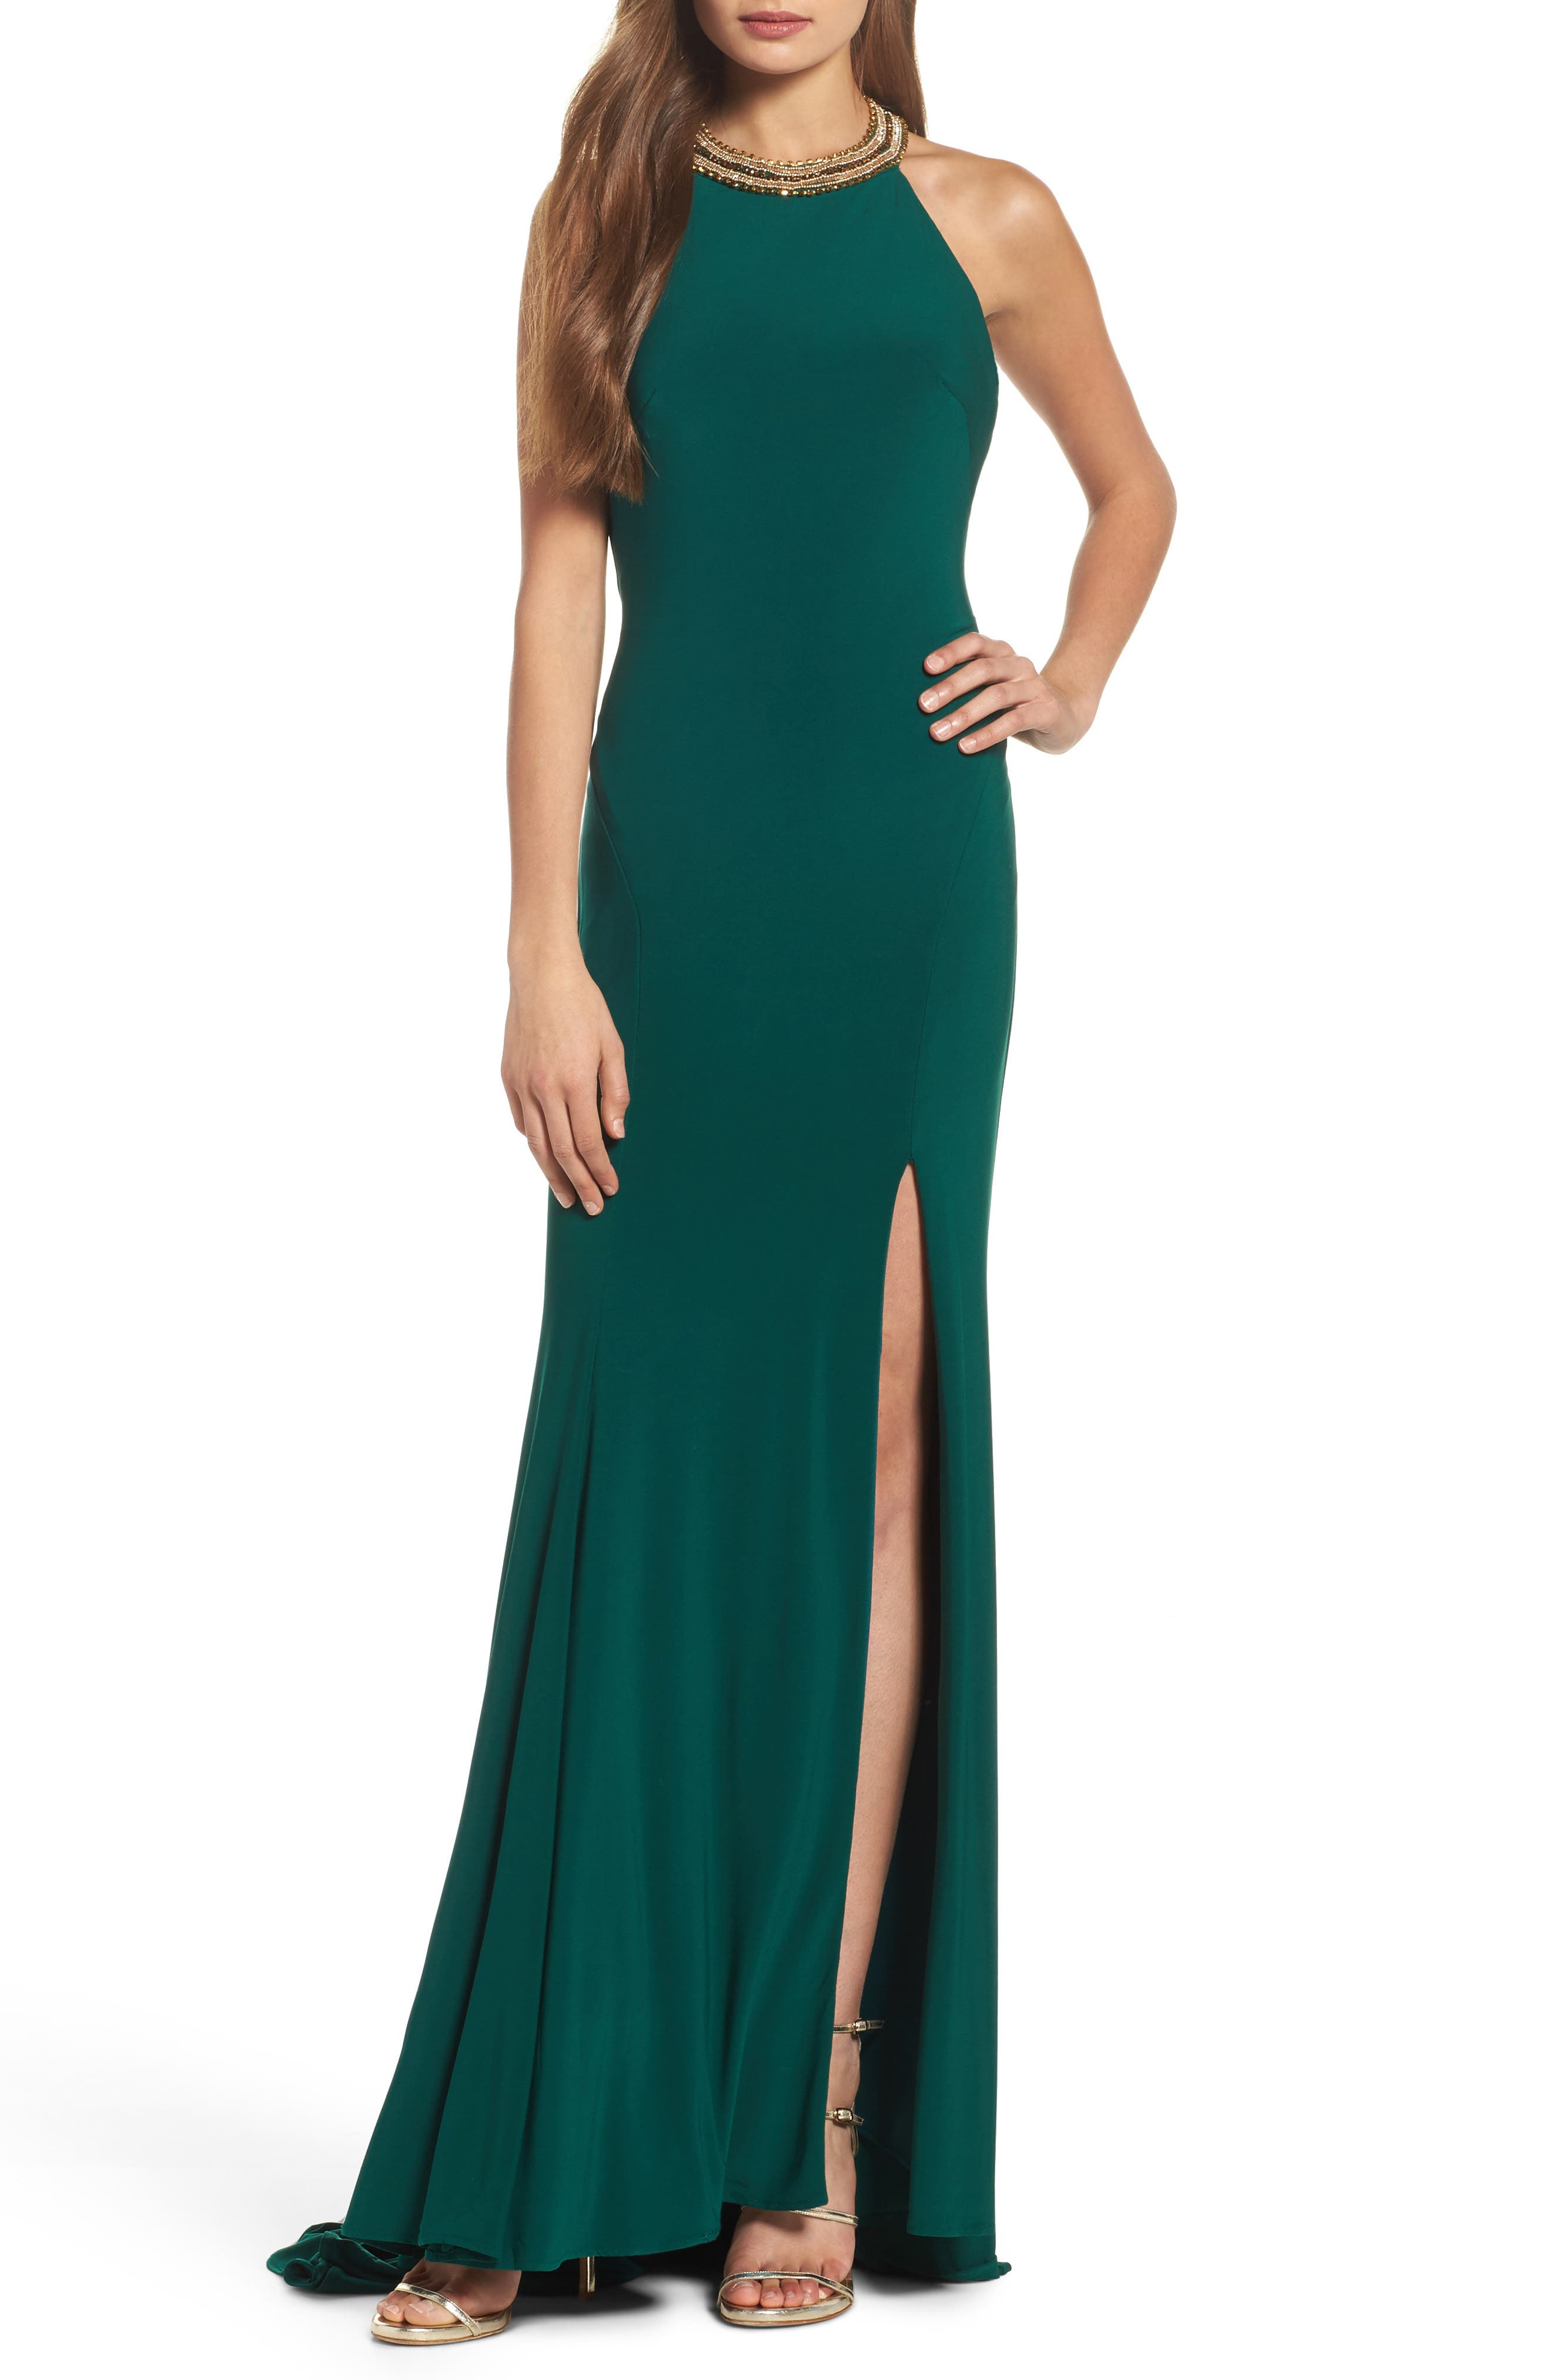 70s Prom, Formal, Evening, Party Dresses Womens MAC Duggal Beaded Halter Neck Gown $298.00 AT vintagedancer.com